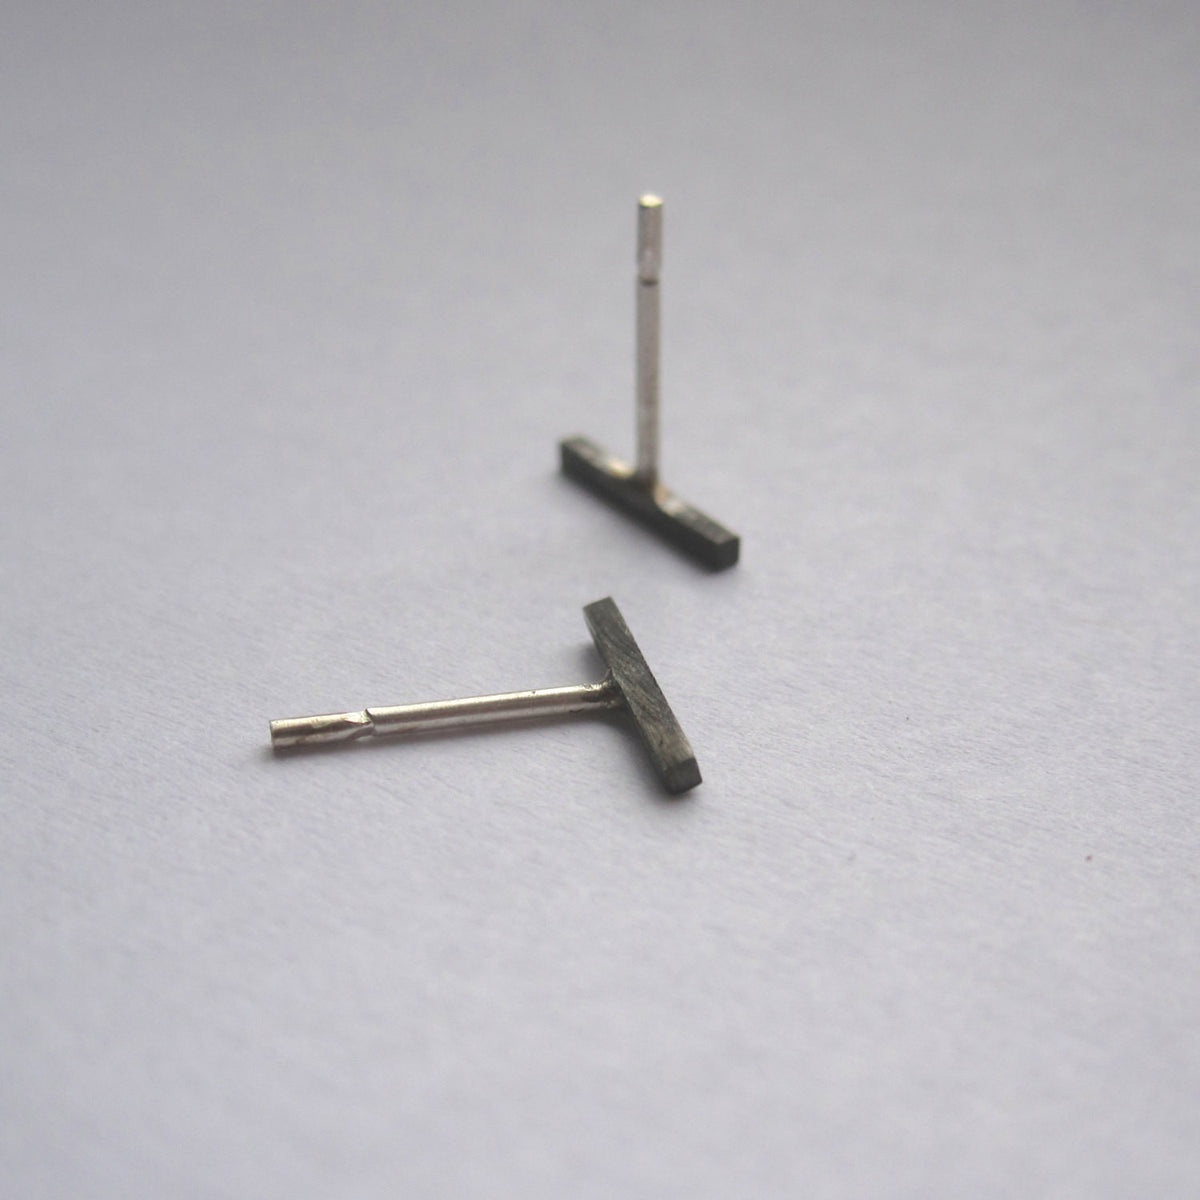 Smart & Classy Hand-Made Staple Bar Stud Earrings - 0117 - Virginia Wynne Designs